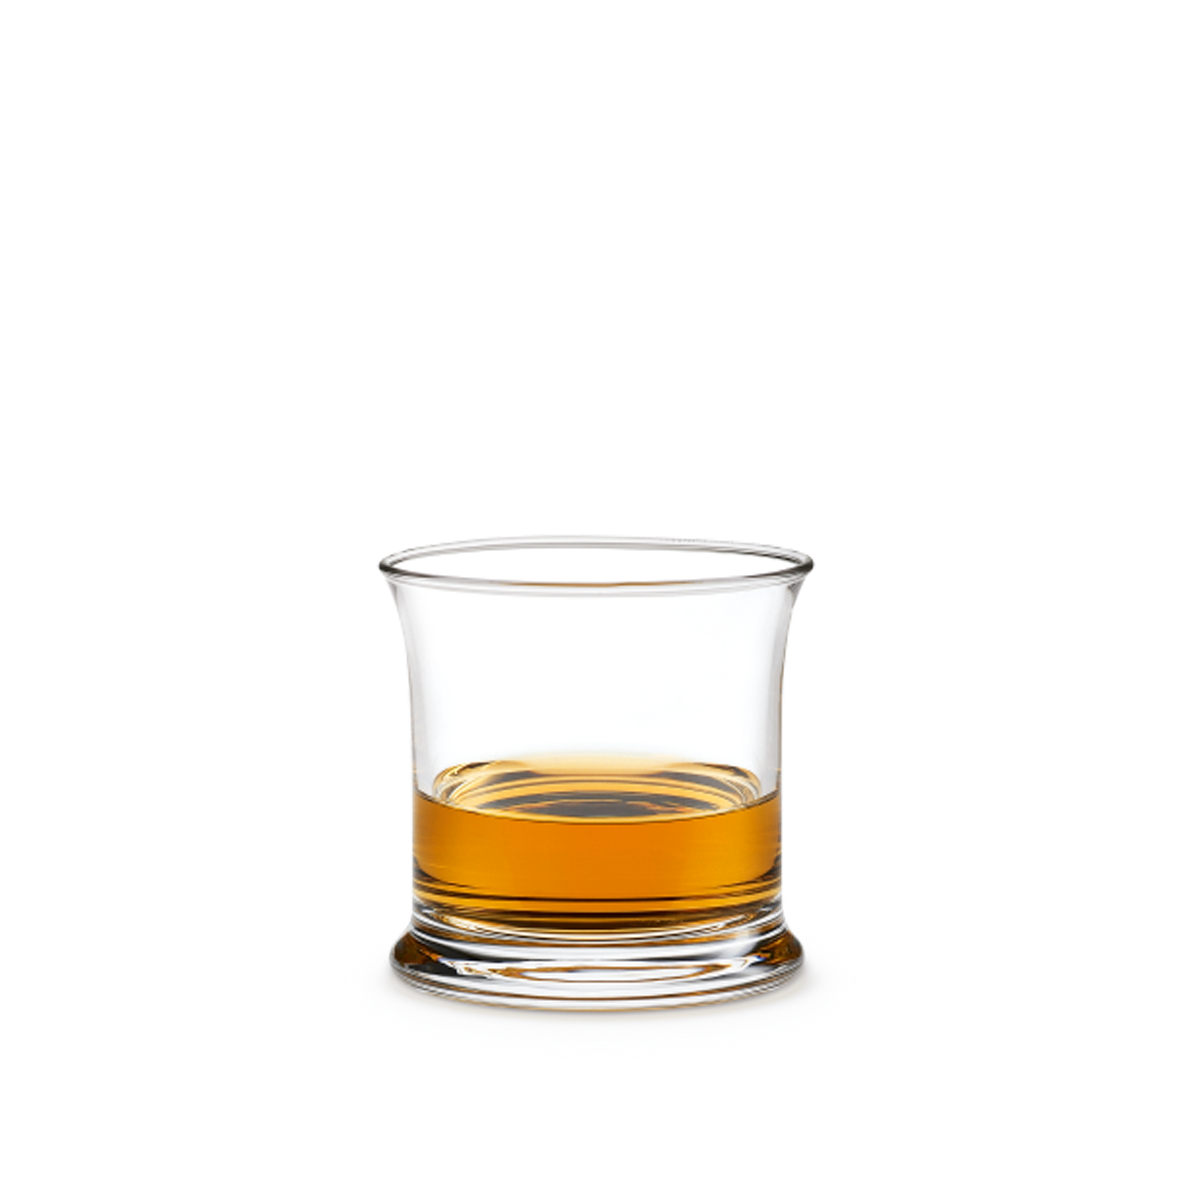 Whiskey glass png. No long drinks cl